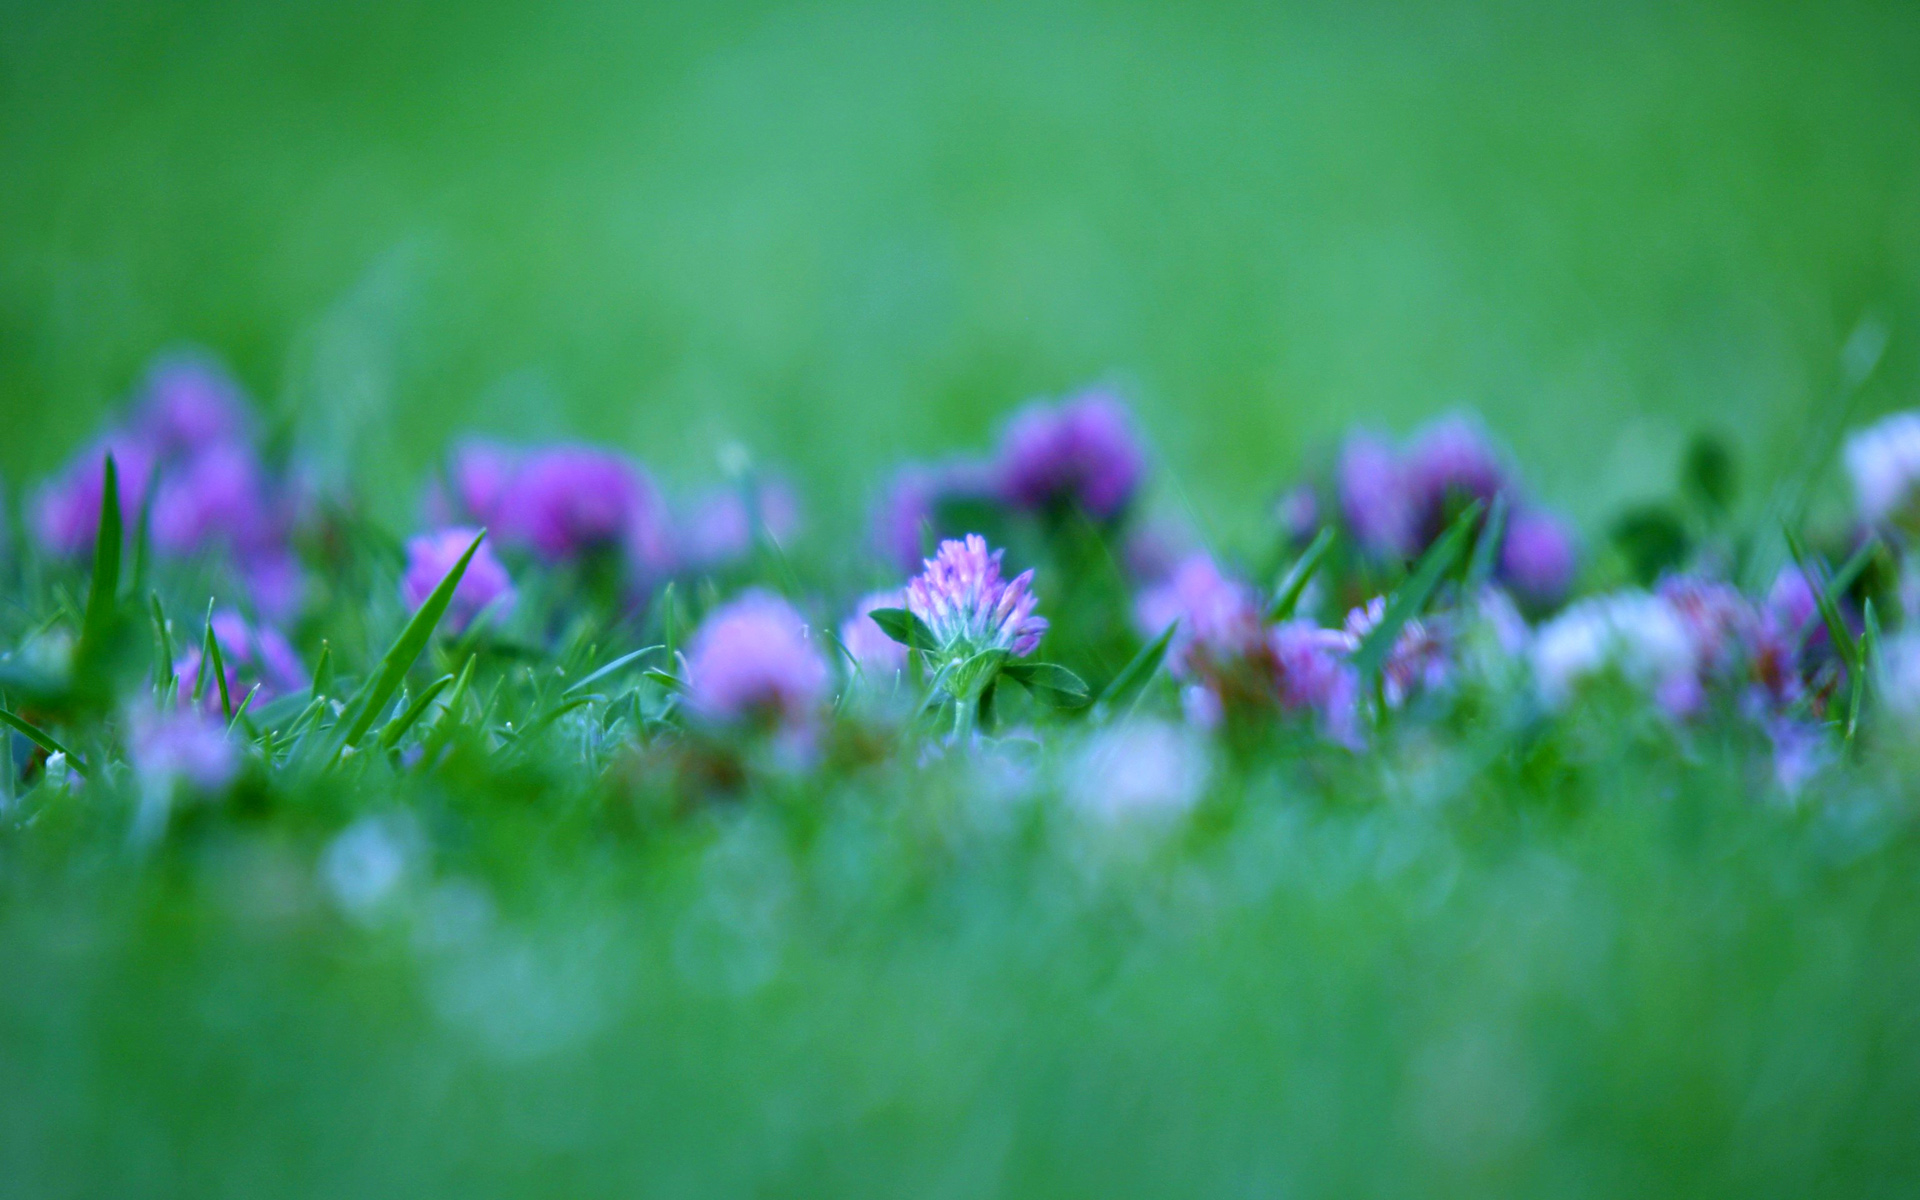 Windows 7 purple flower wallpaper